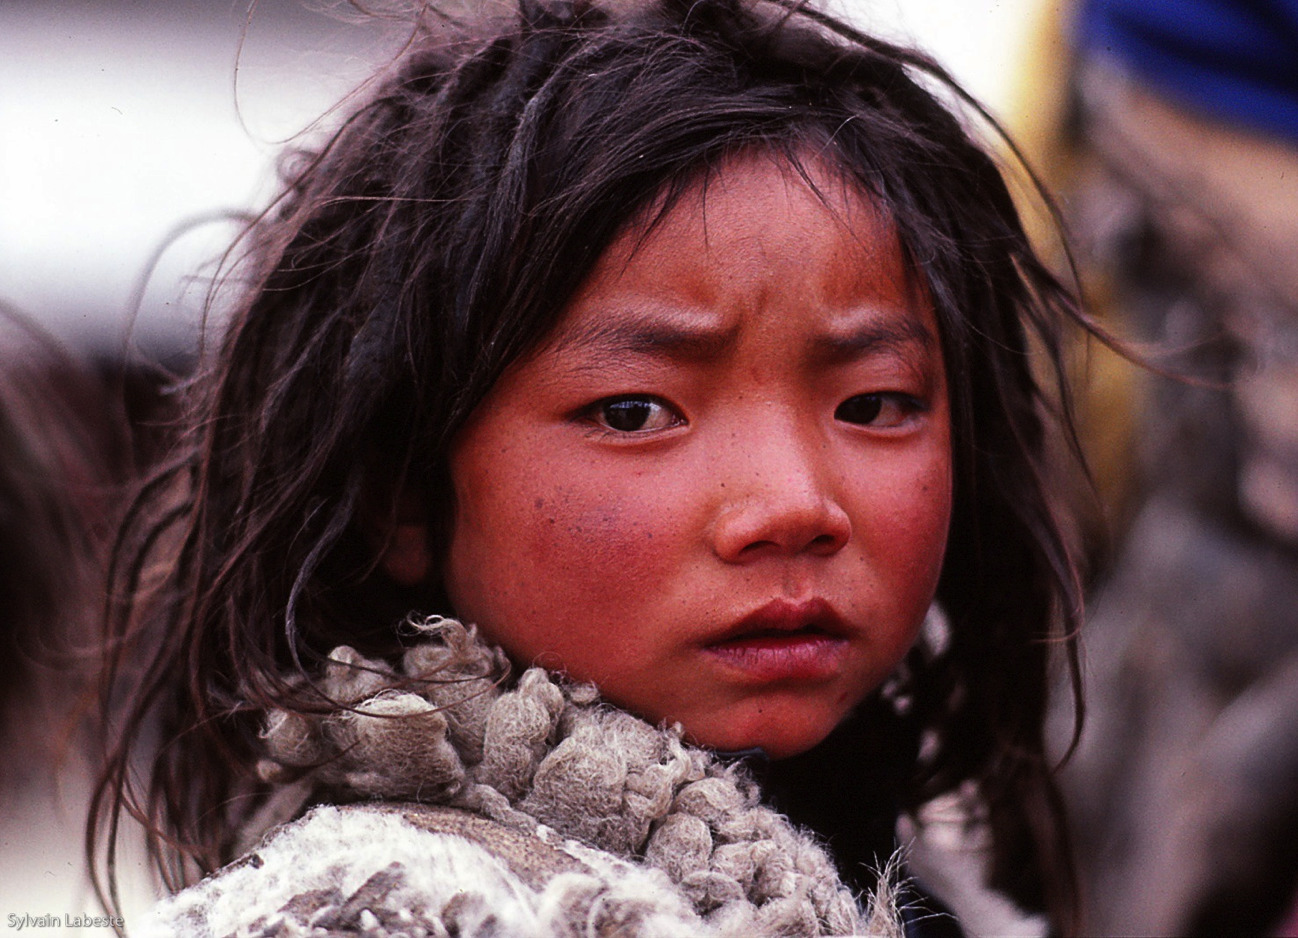 tibetan girl high HD Wallpaper